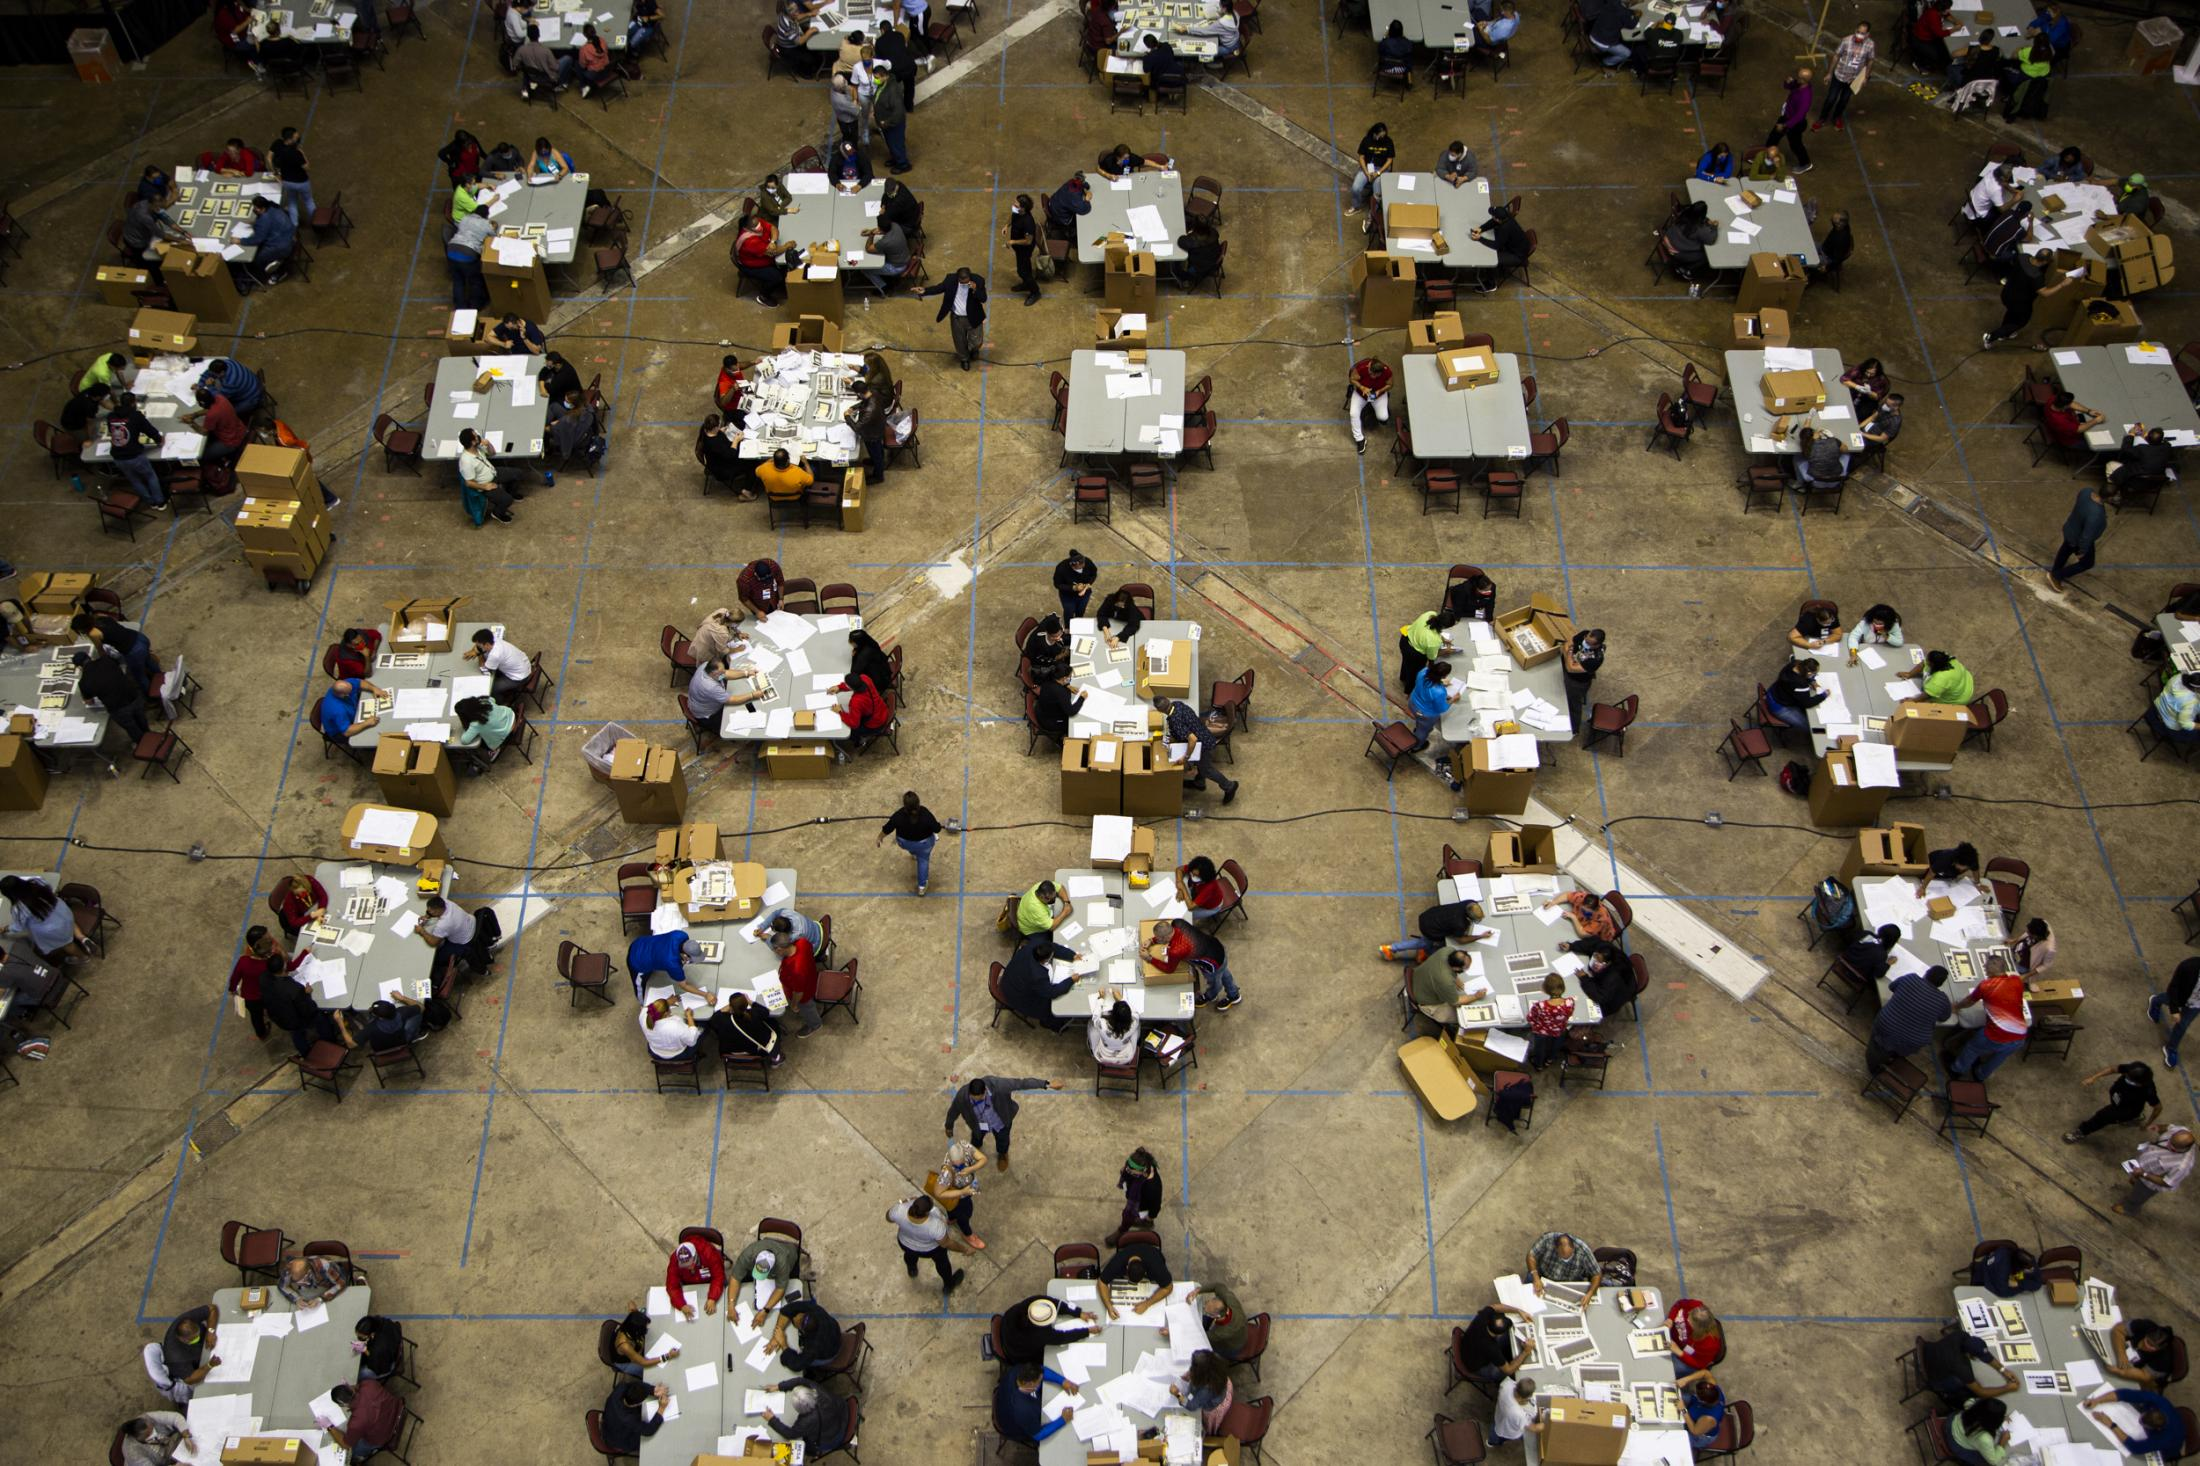 The boxes of ballots that were recently found are counted at the Roberto Clemente Coliseum in San Juan, P.R., on Nov. 11, 2020. A week after the island's general election 125 boxes of uncounted votes surfaced. At each table representatives from each main party are to be present in the count. (Erika P. Rodriguez for the New York Times)